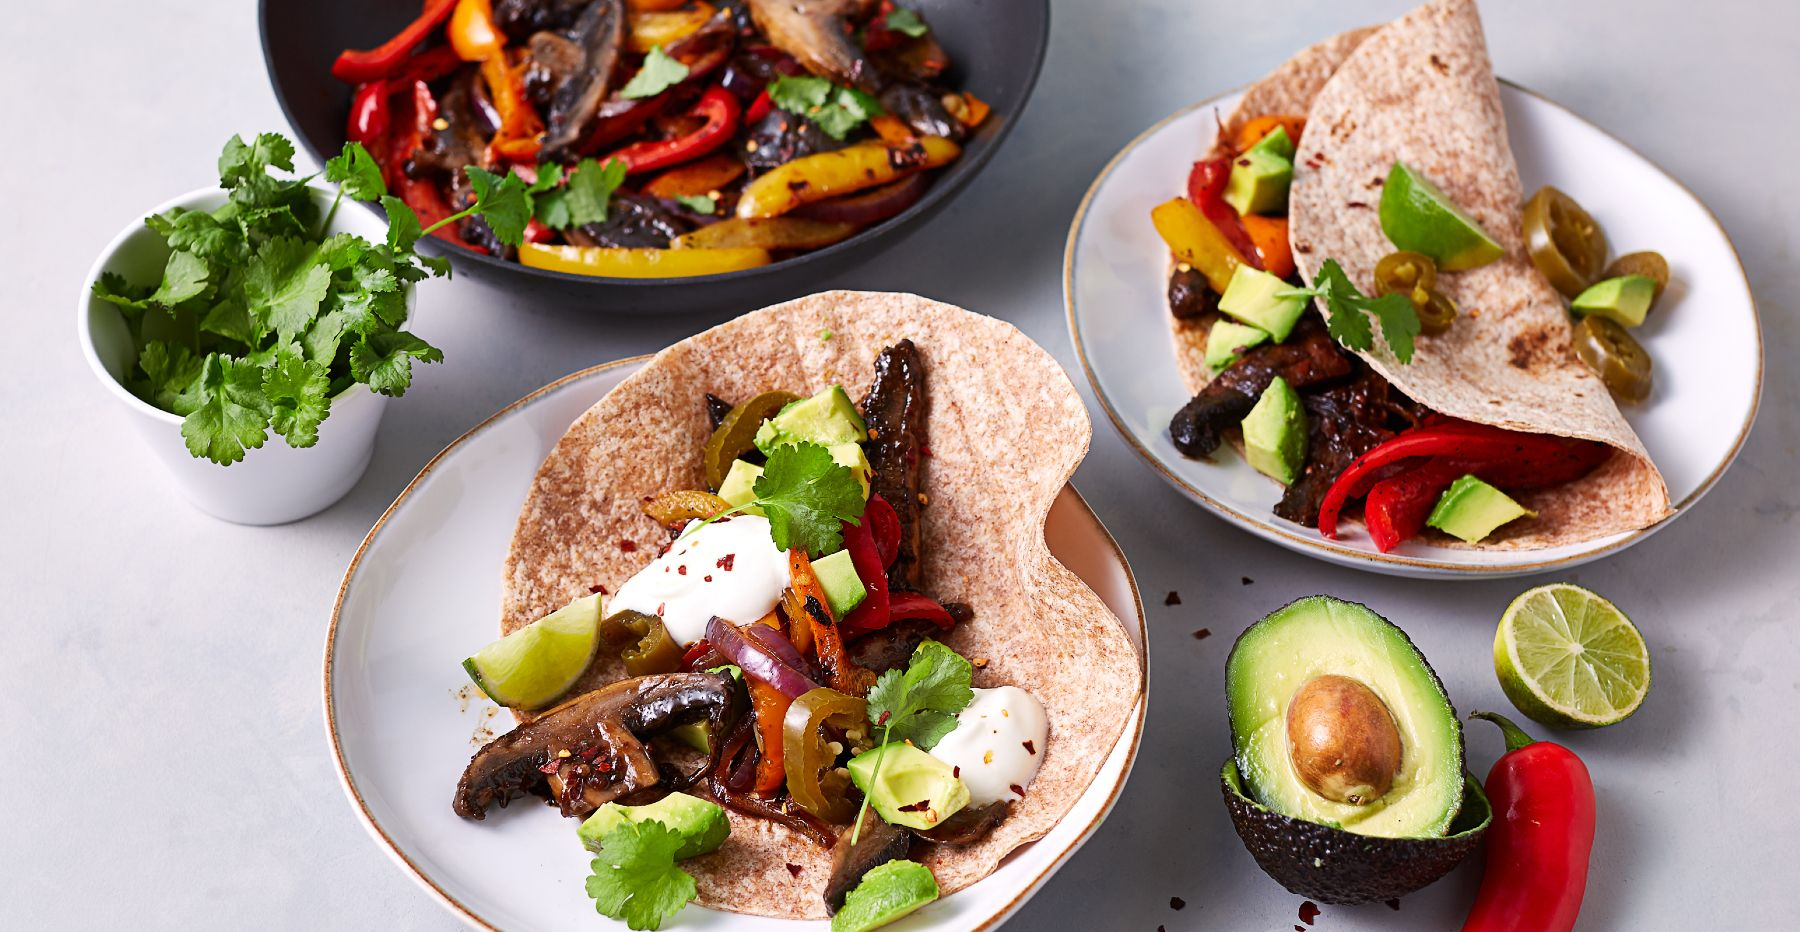 Vegane Fajitas | Ultimative Portobello Fajitas in nur 15 Minuten